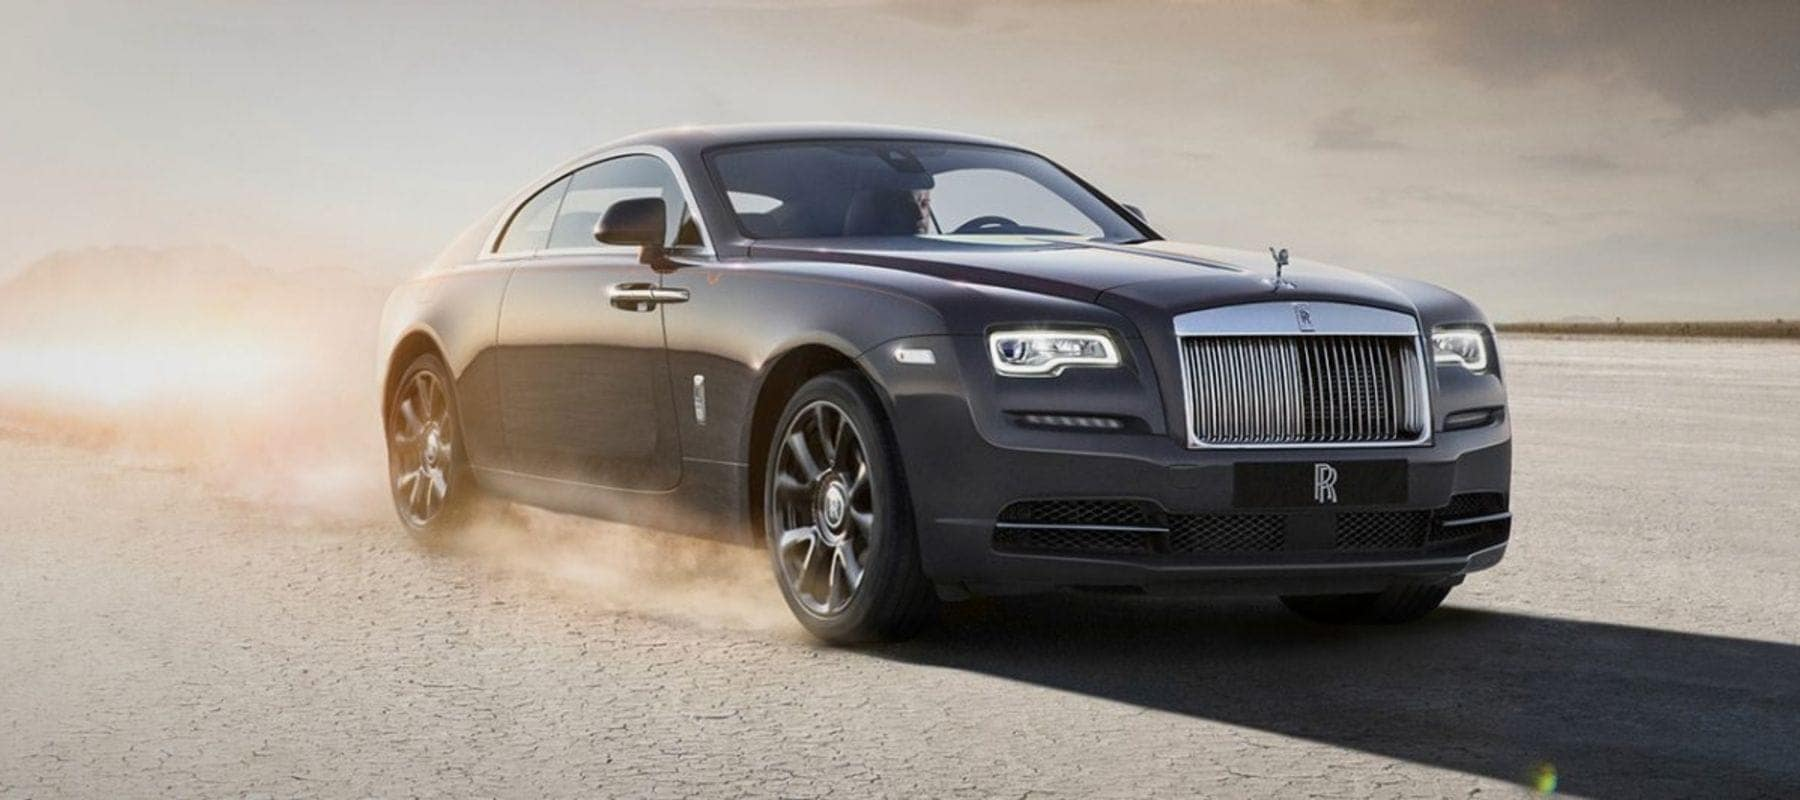 Front angled view of the Rolls-Royce Wraith